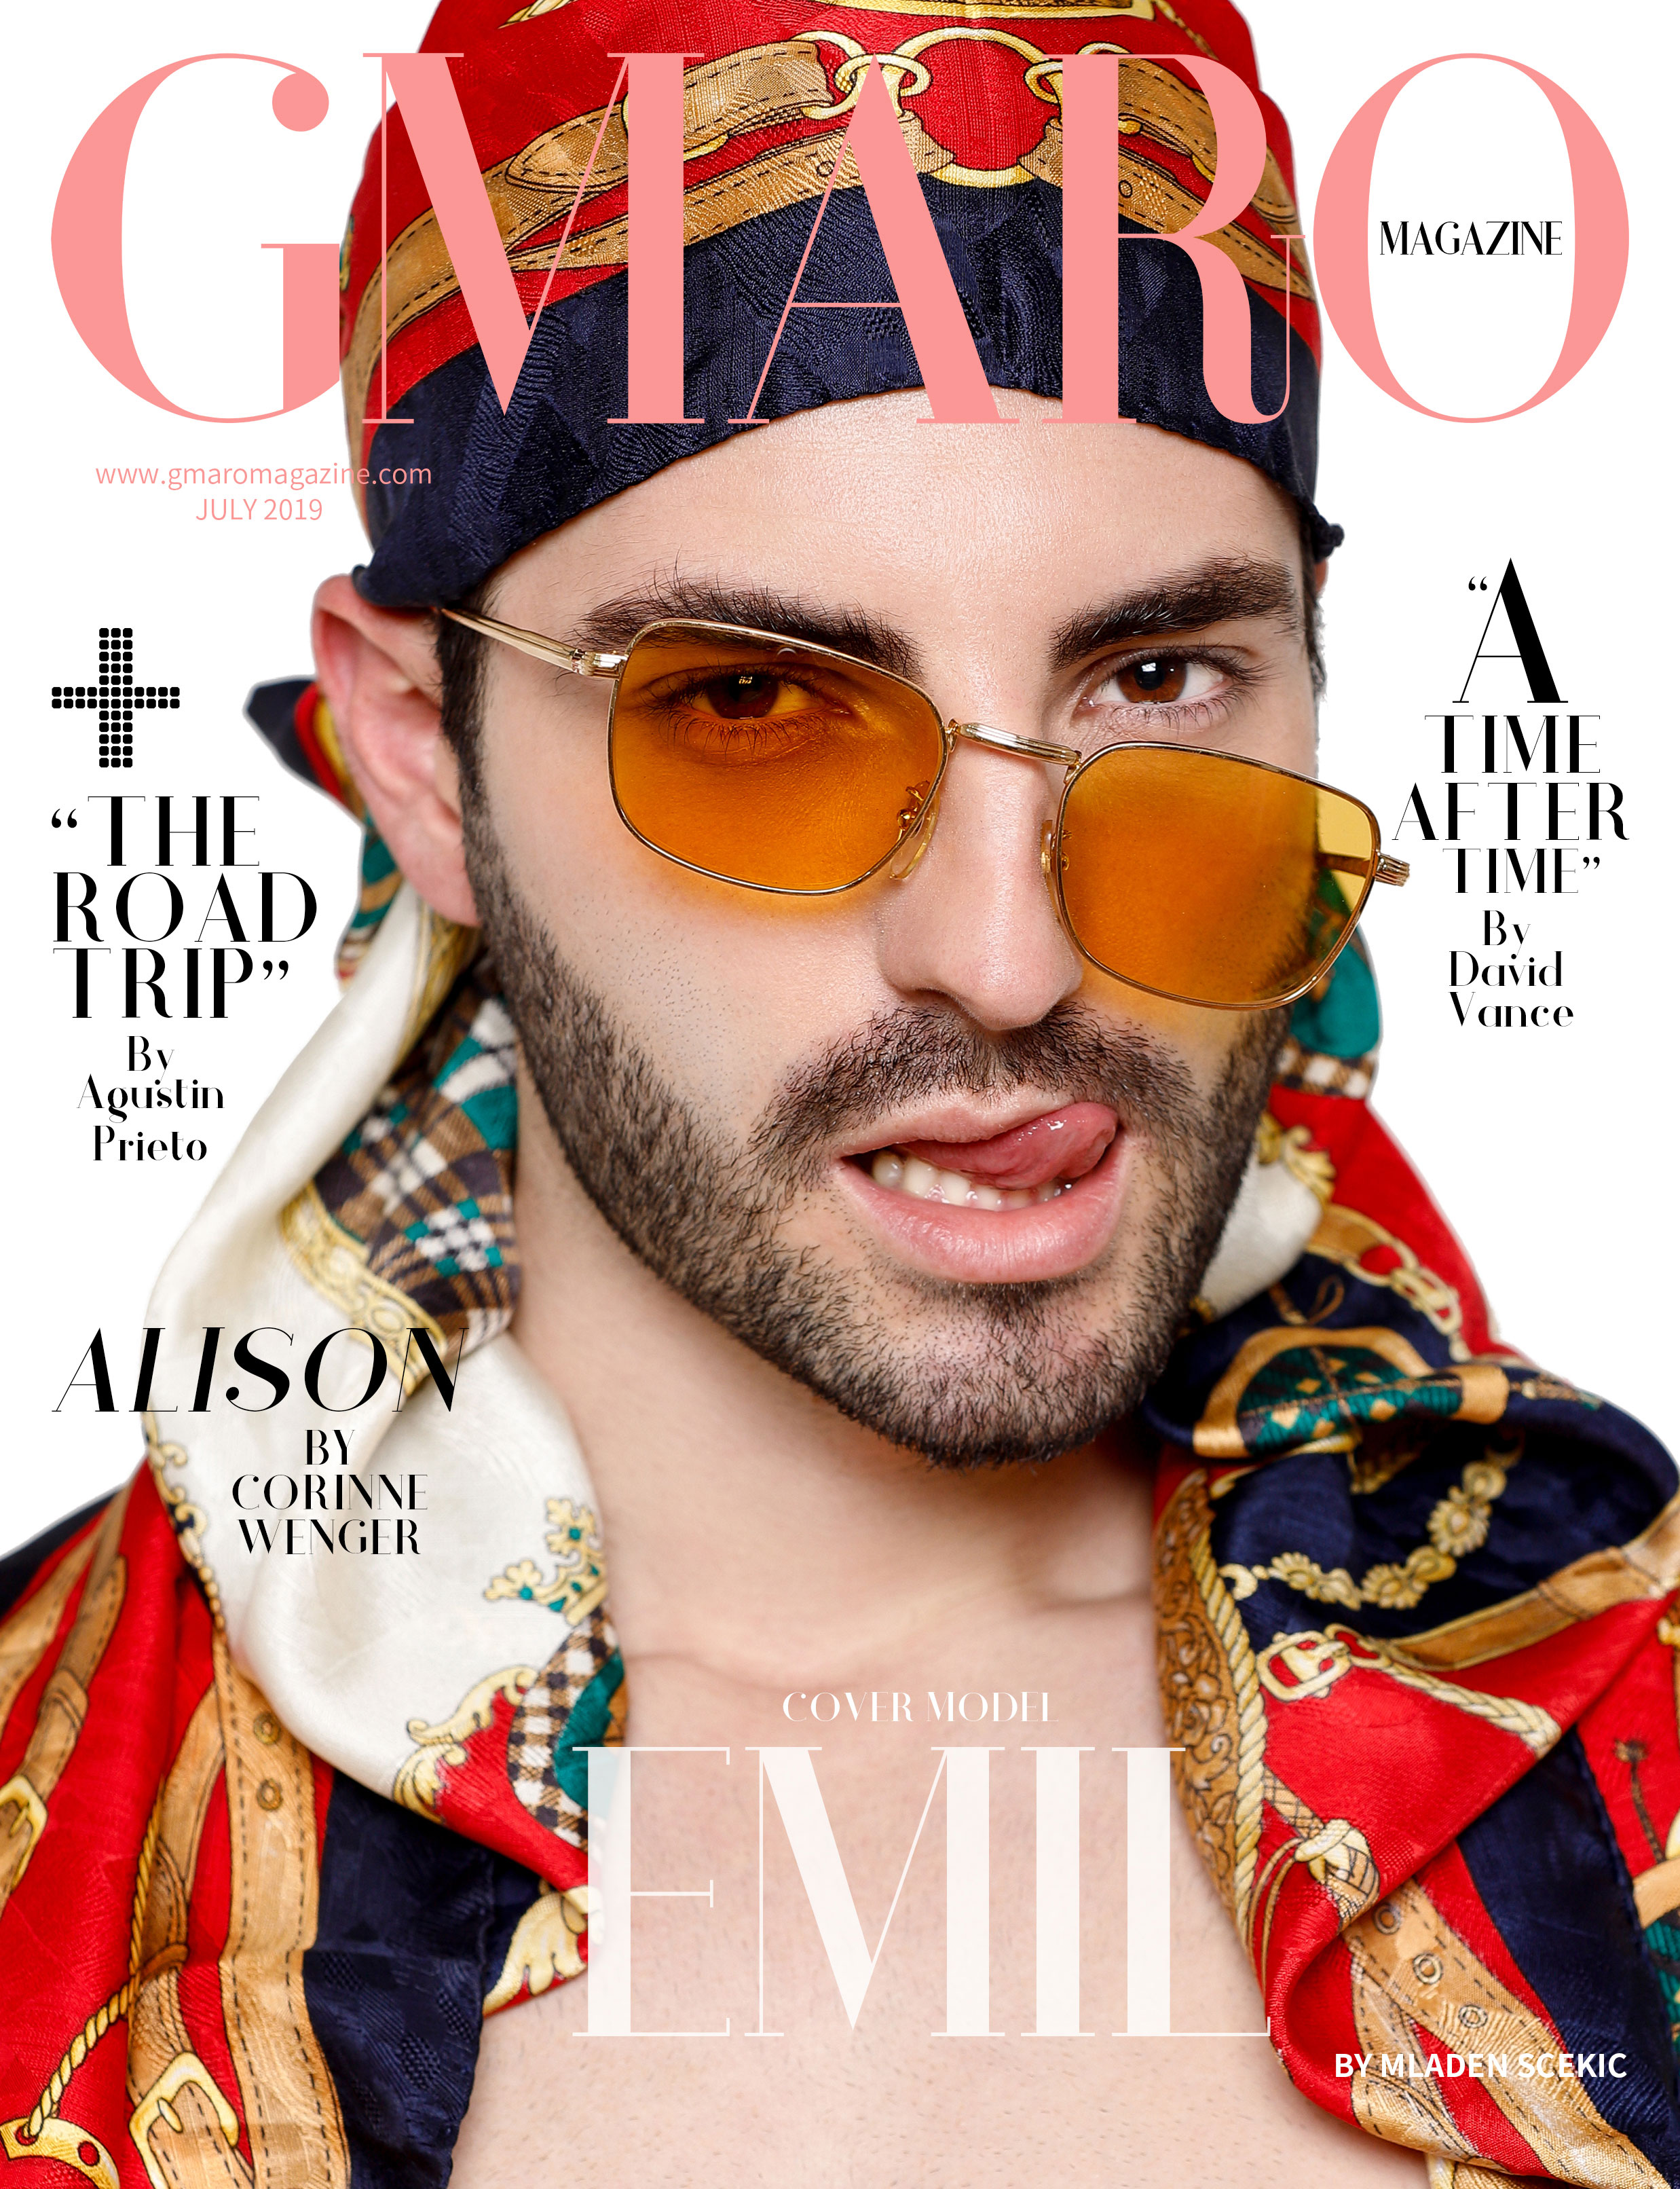 GMARO July 2019 Issue #07